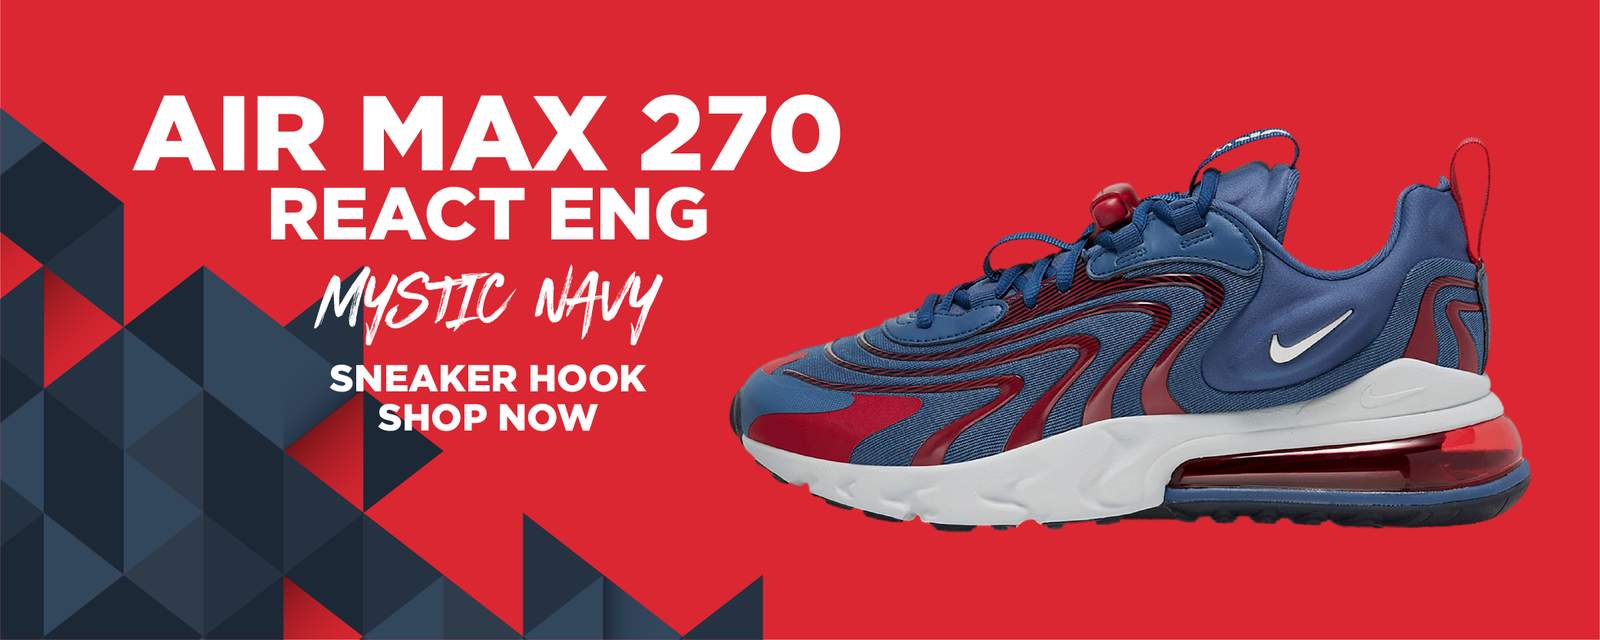 Air Max 270 React ENG Mystic Navy Clothing to match Sneakers | Clothing to match Nike Air Max 270 React ENG Mystic Navy Shoes